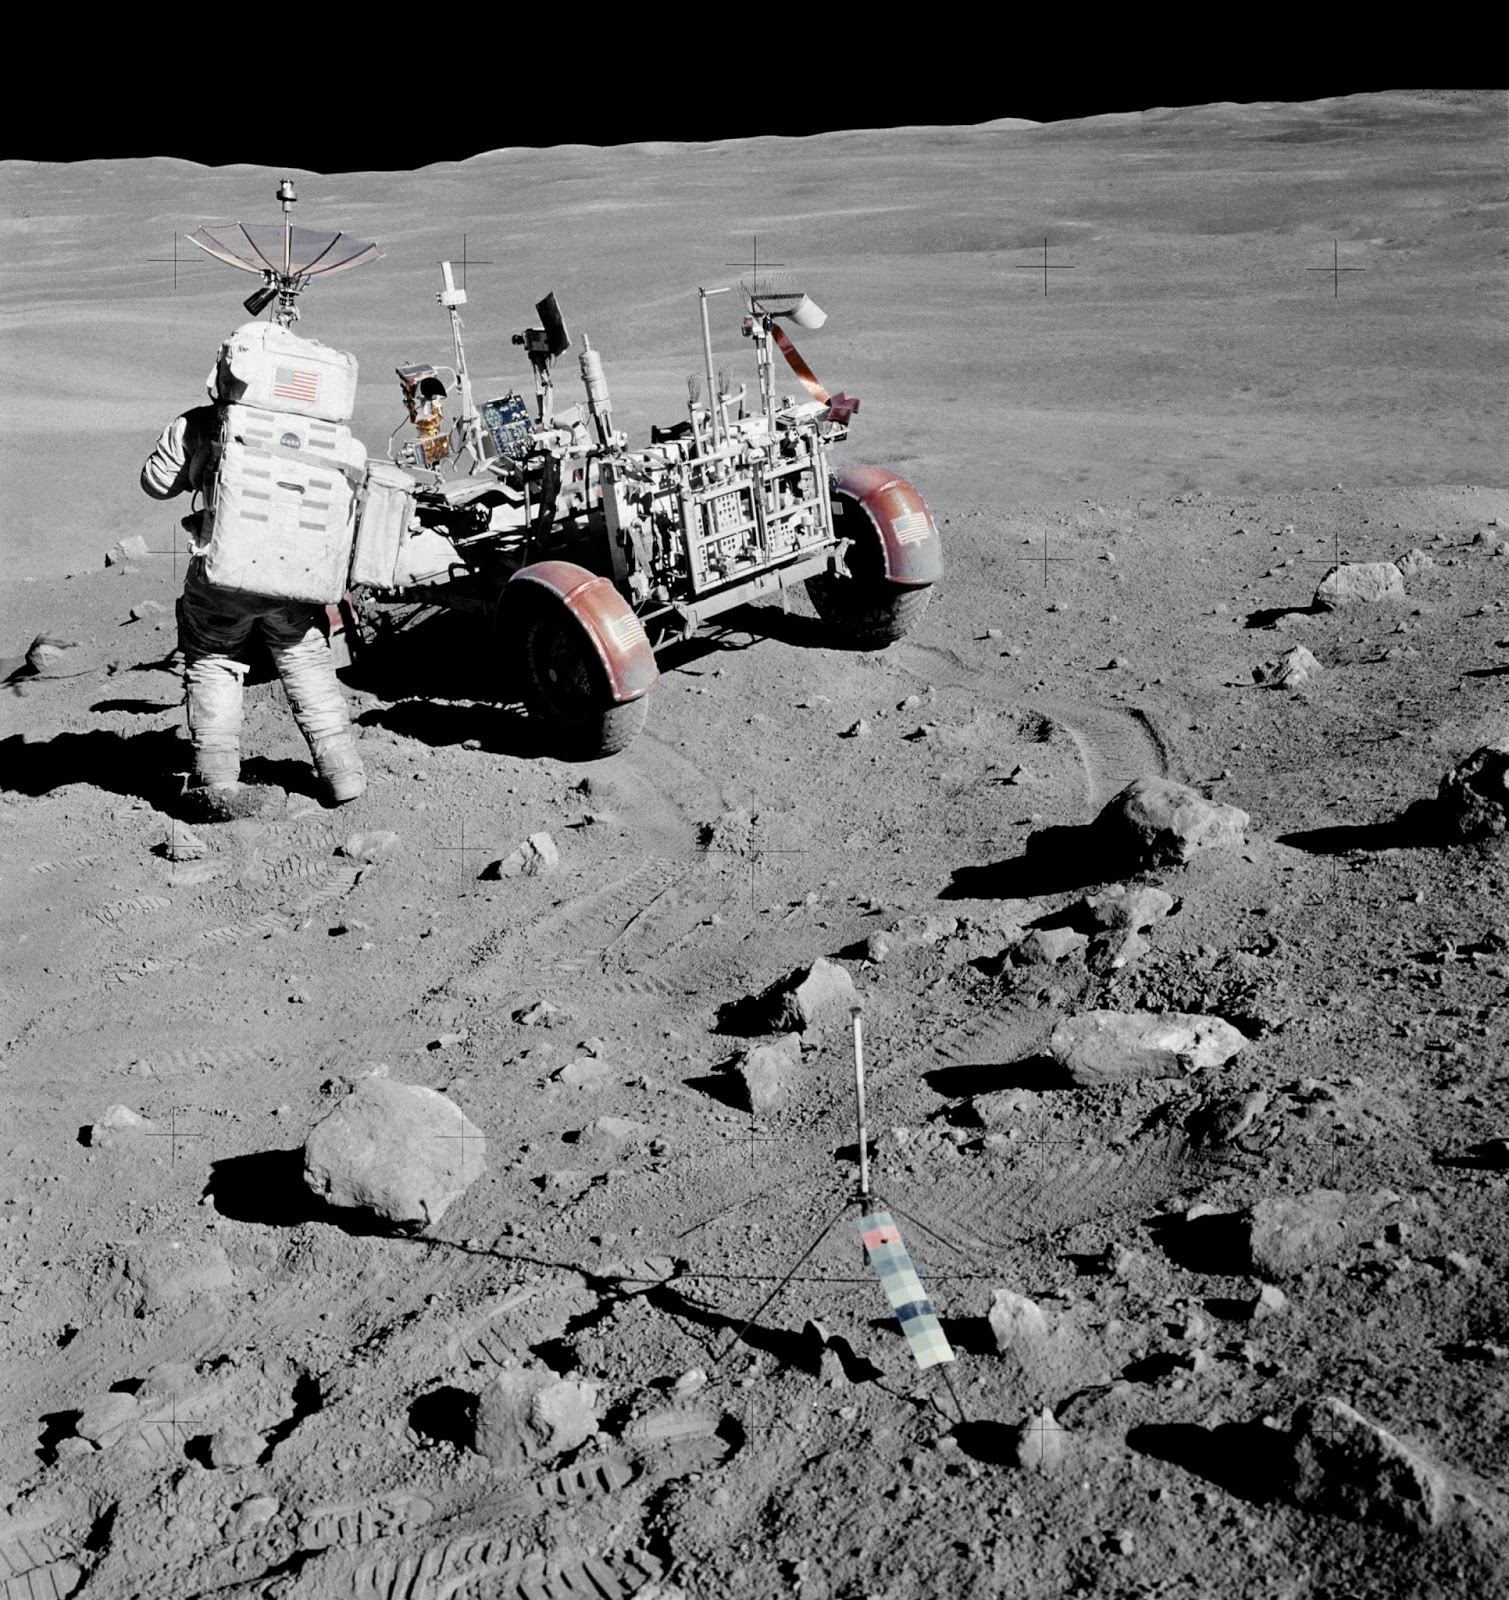 Moon rover NASA space program landing controversy science astronomy space astronauts apollo